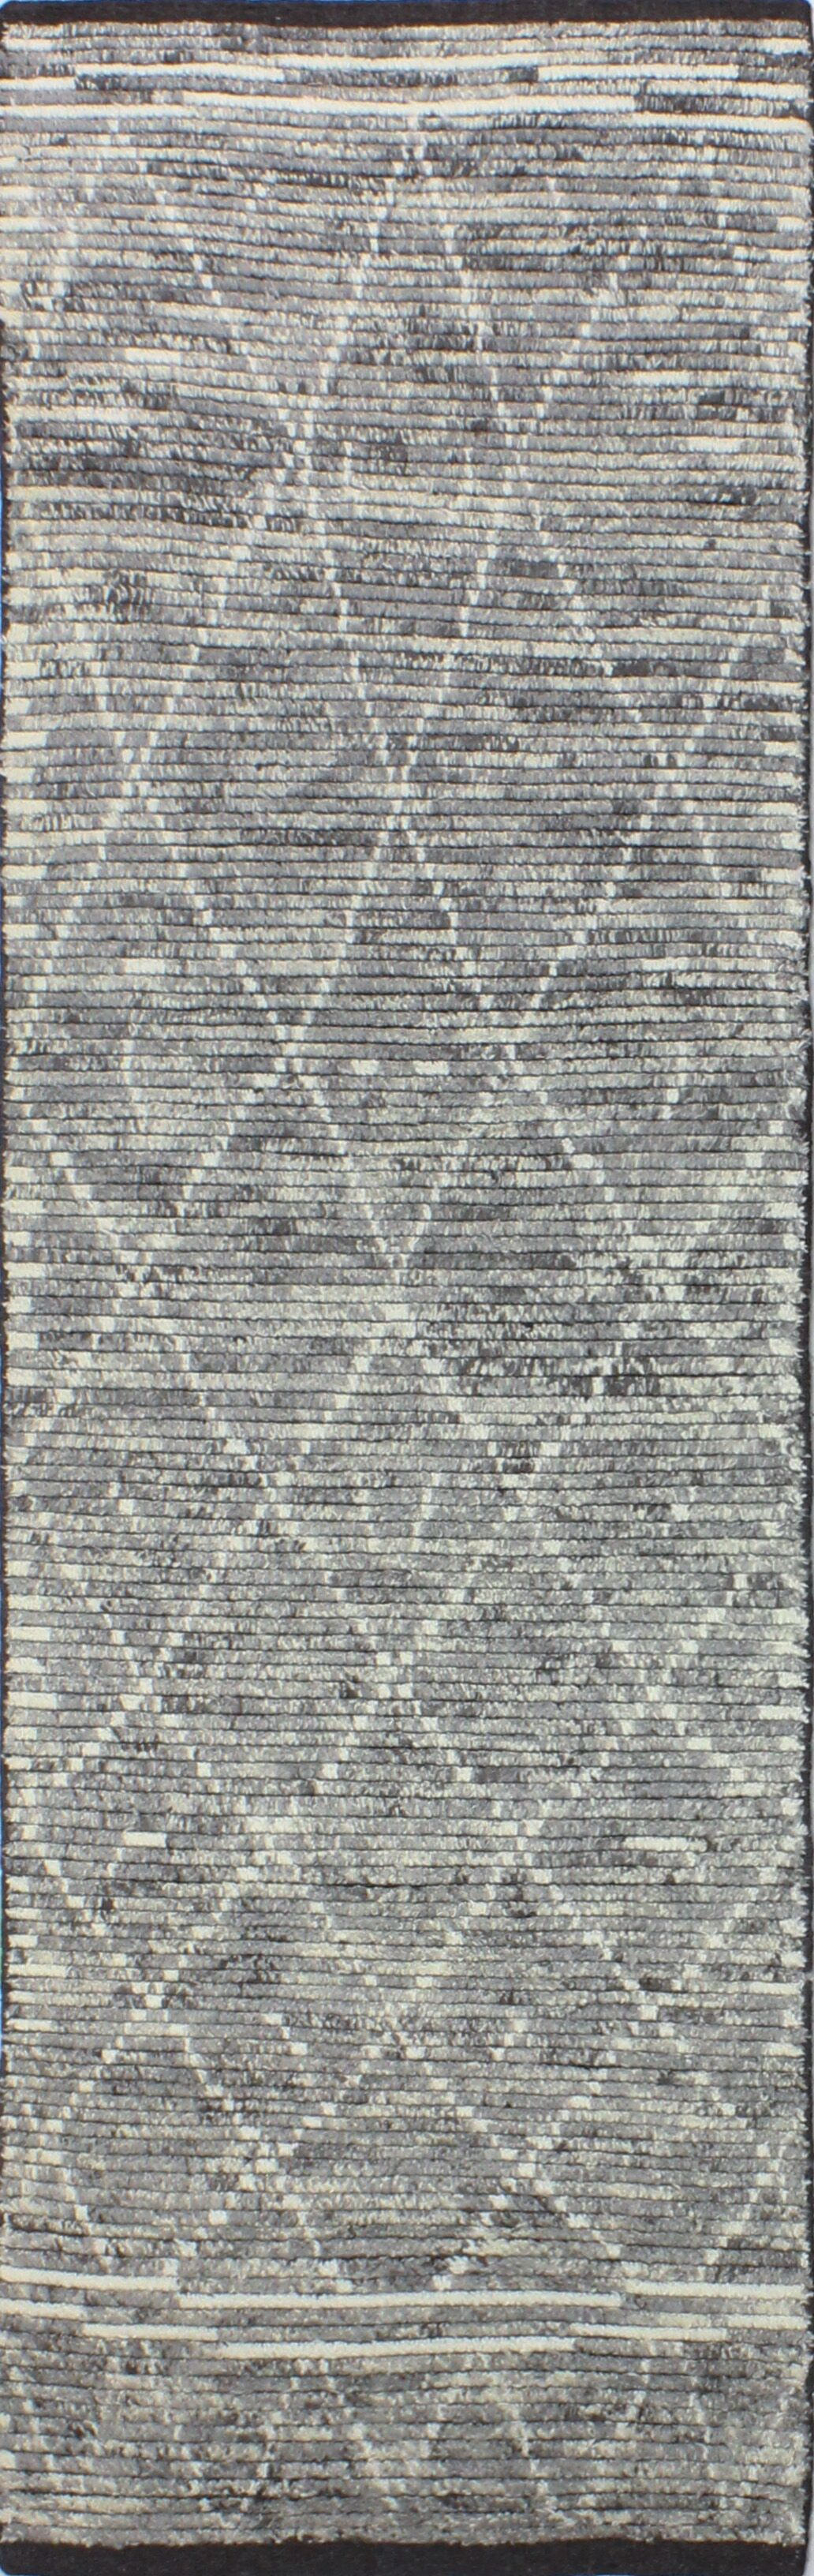 Floressa Hand-Knotted Wool Gray Area Rug Rug Size: Runner 2'6